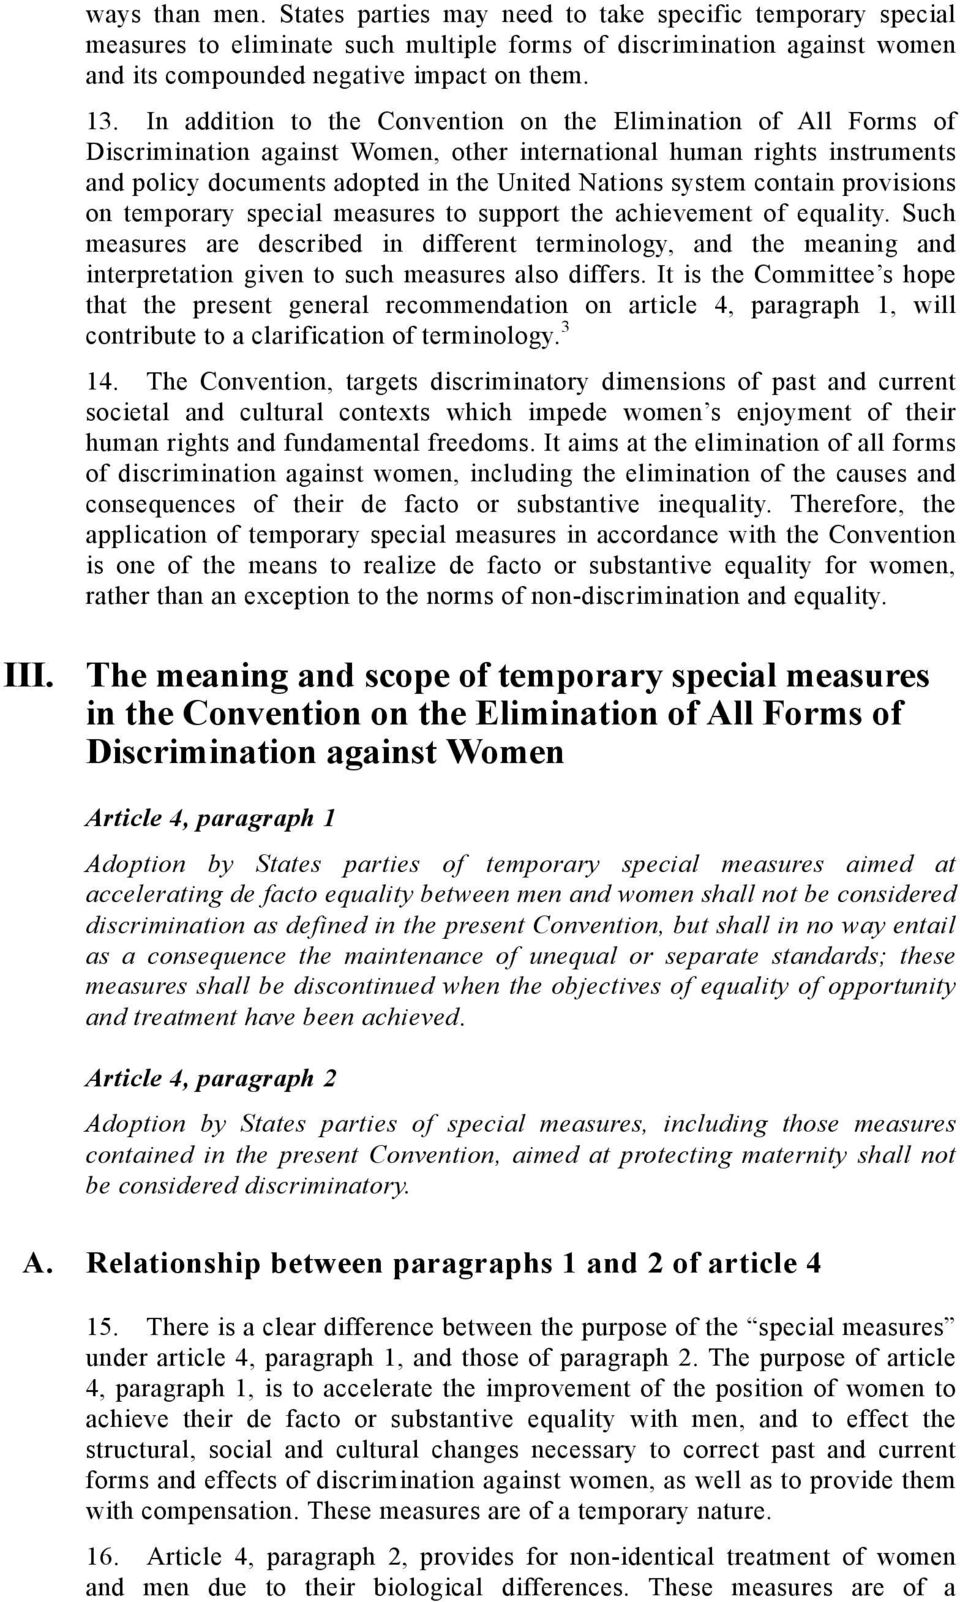 contain provisions on temporary special measures to support the achievement of equality.